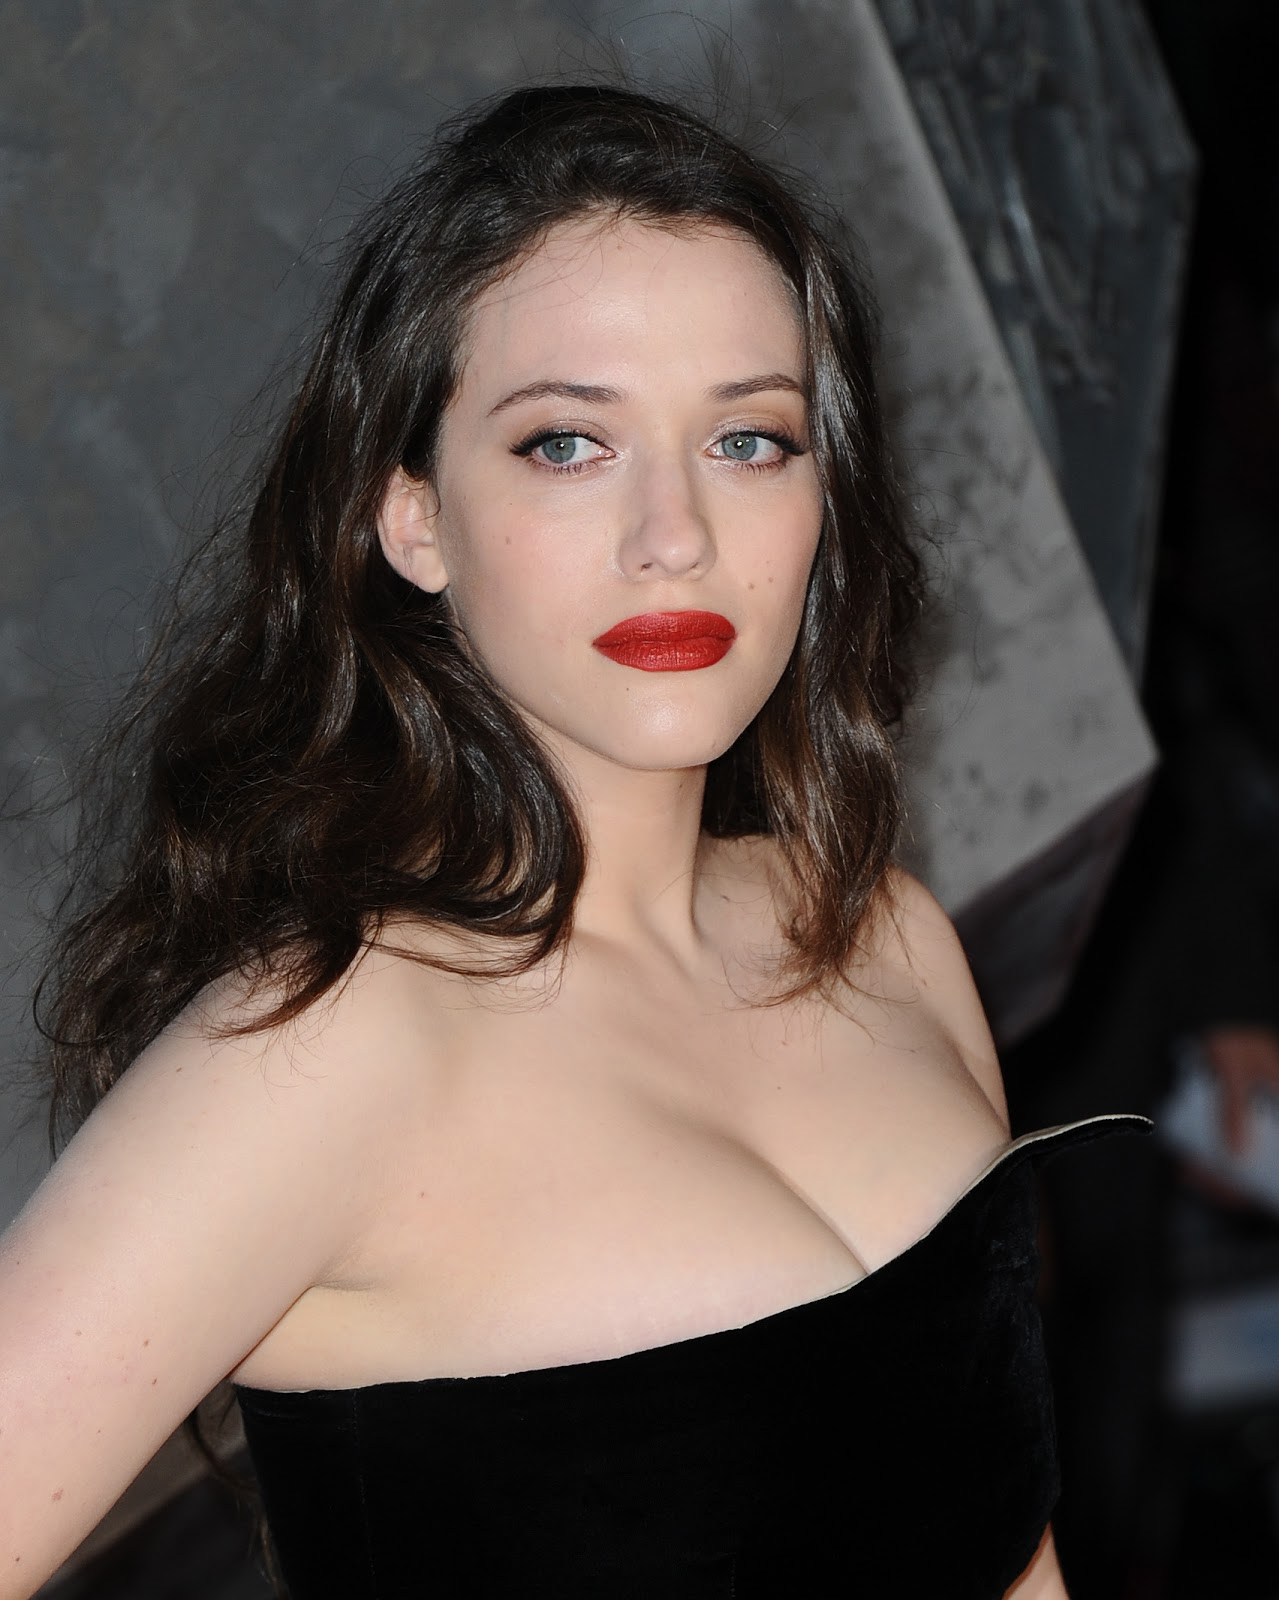 Much Hot kat dennings cleavage similar. congratulate